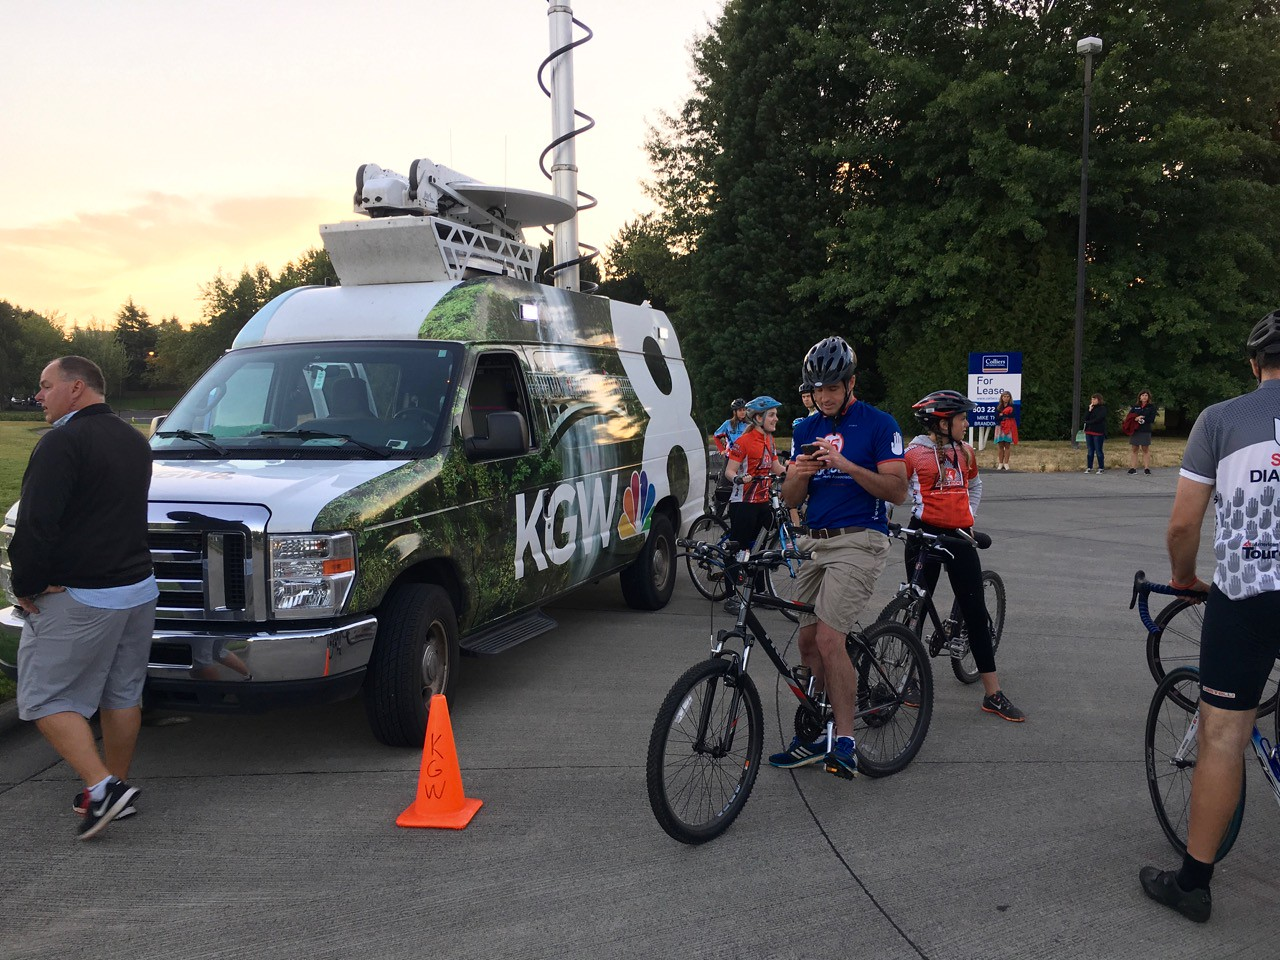 2016 TDC KGW8 Morning show with Drew Carney